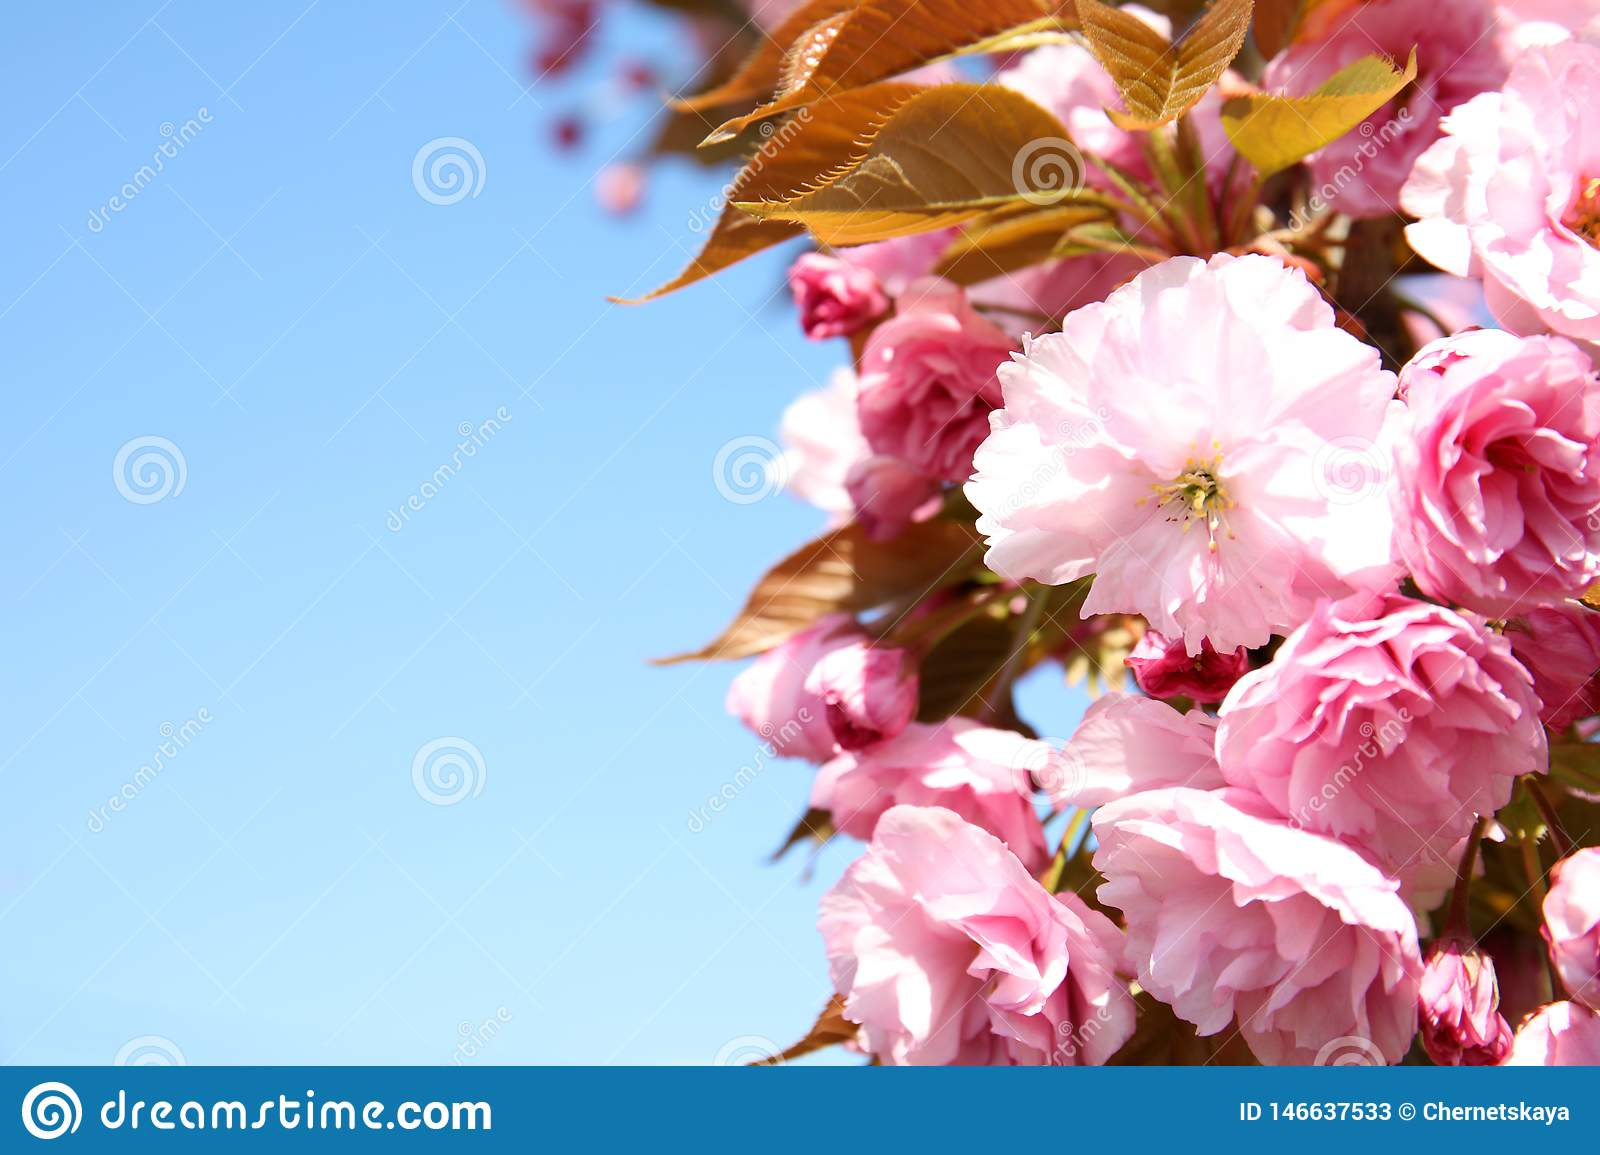 Closeup view of blooming spring tree against blue sky on sunny day.